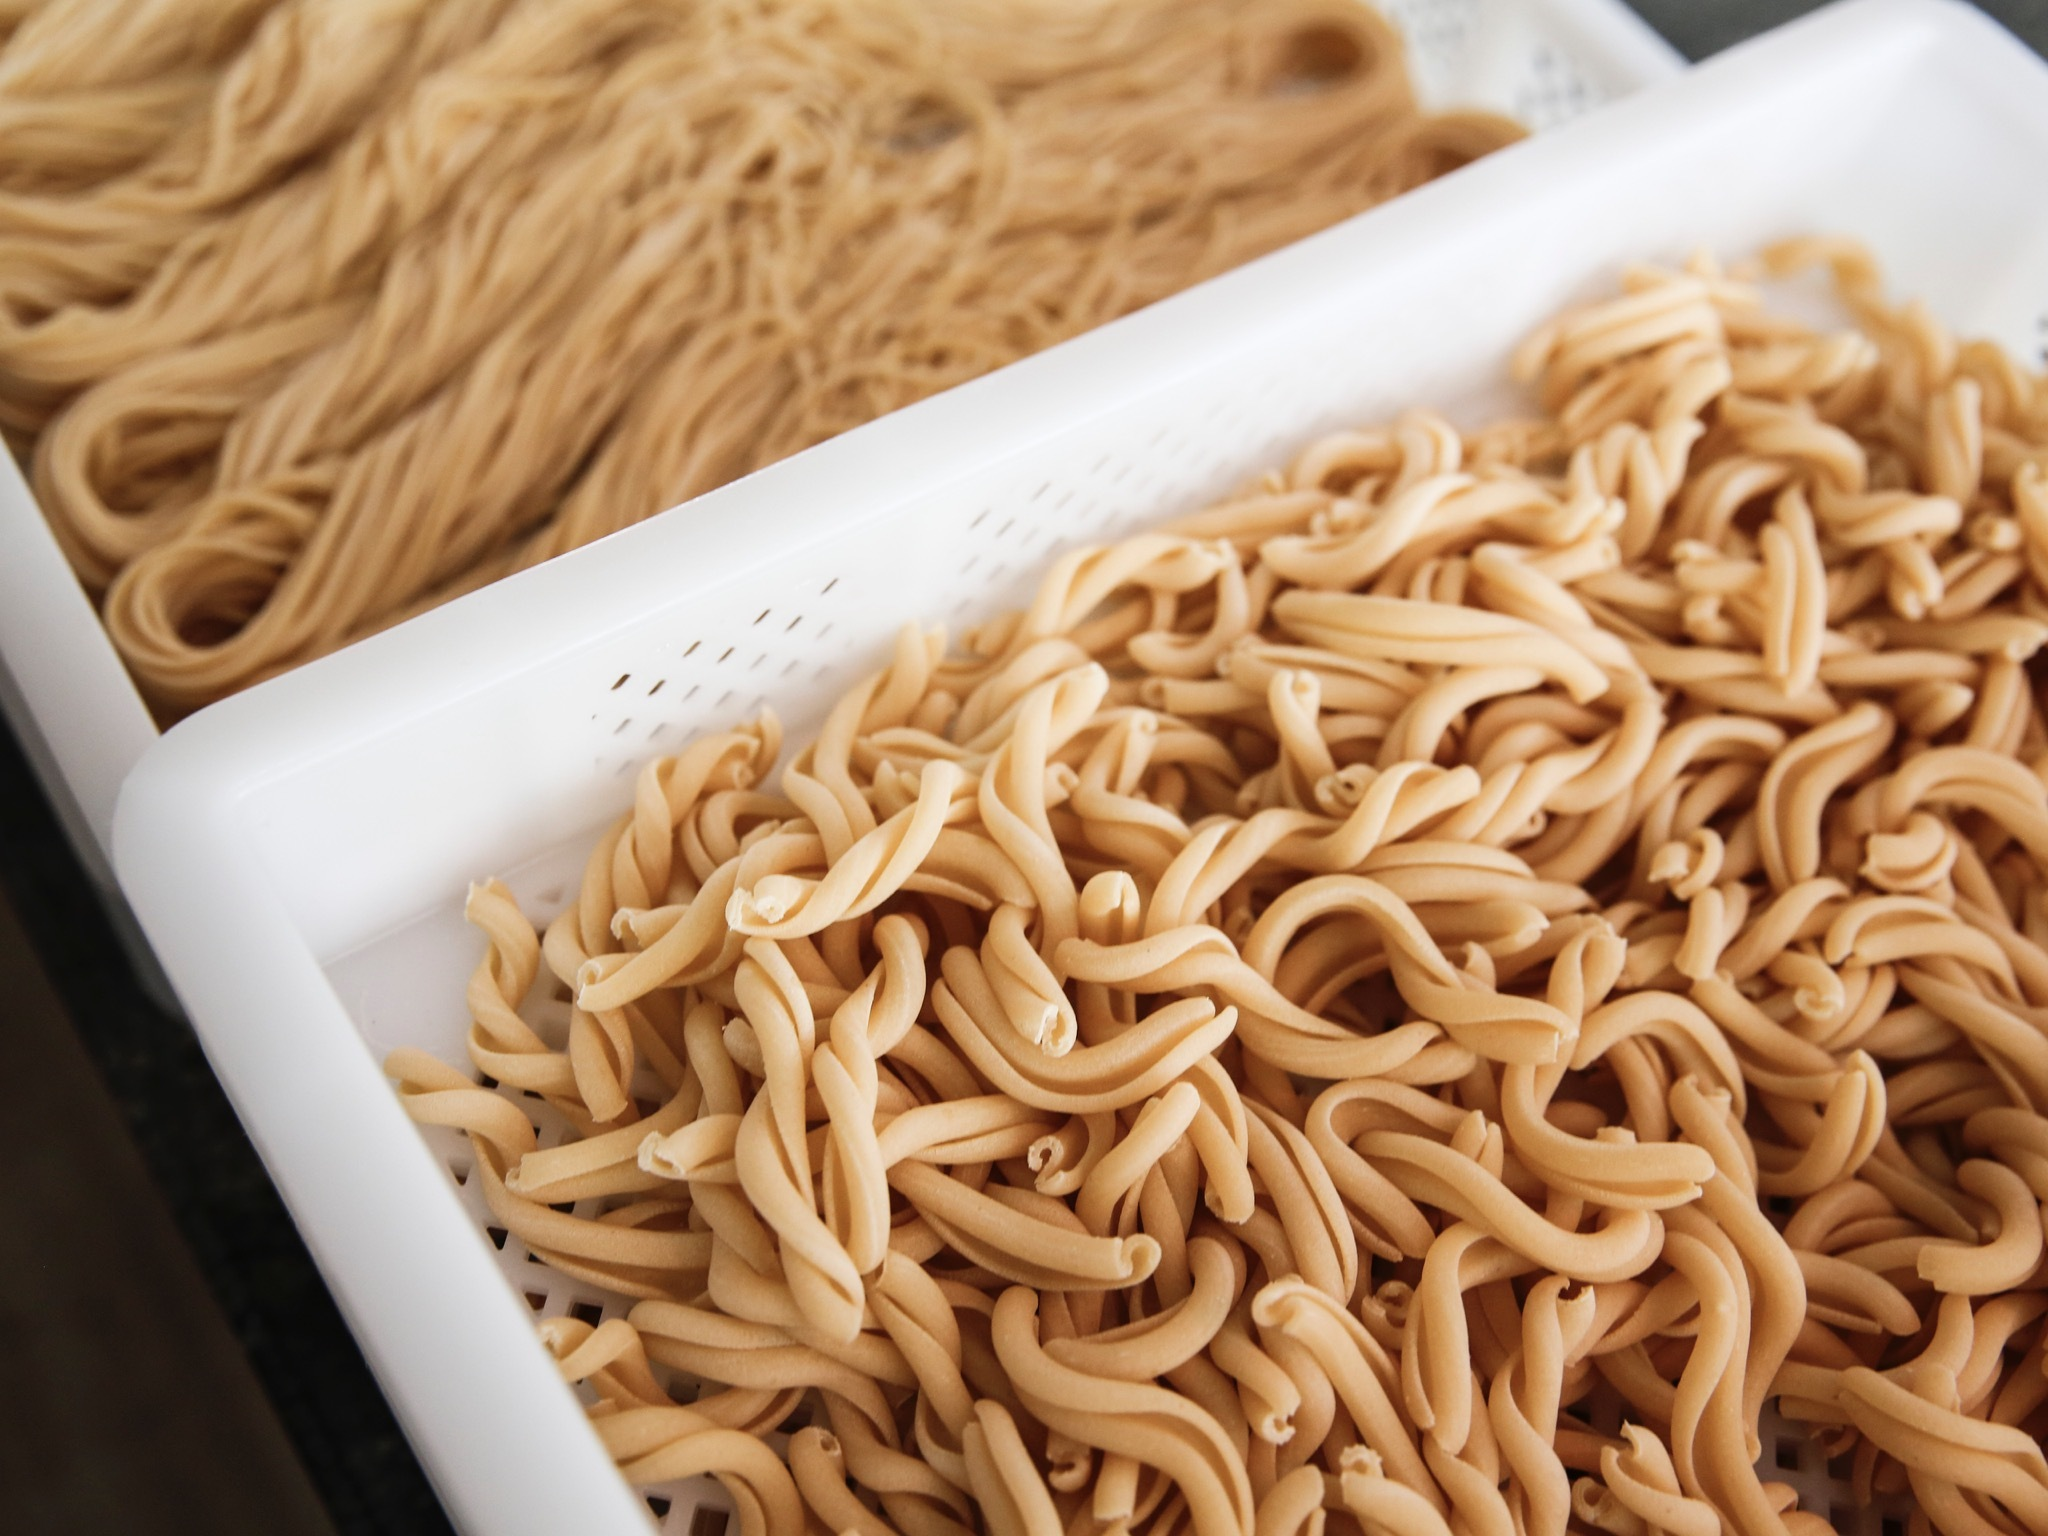 Freshly made varieties of pasta